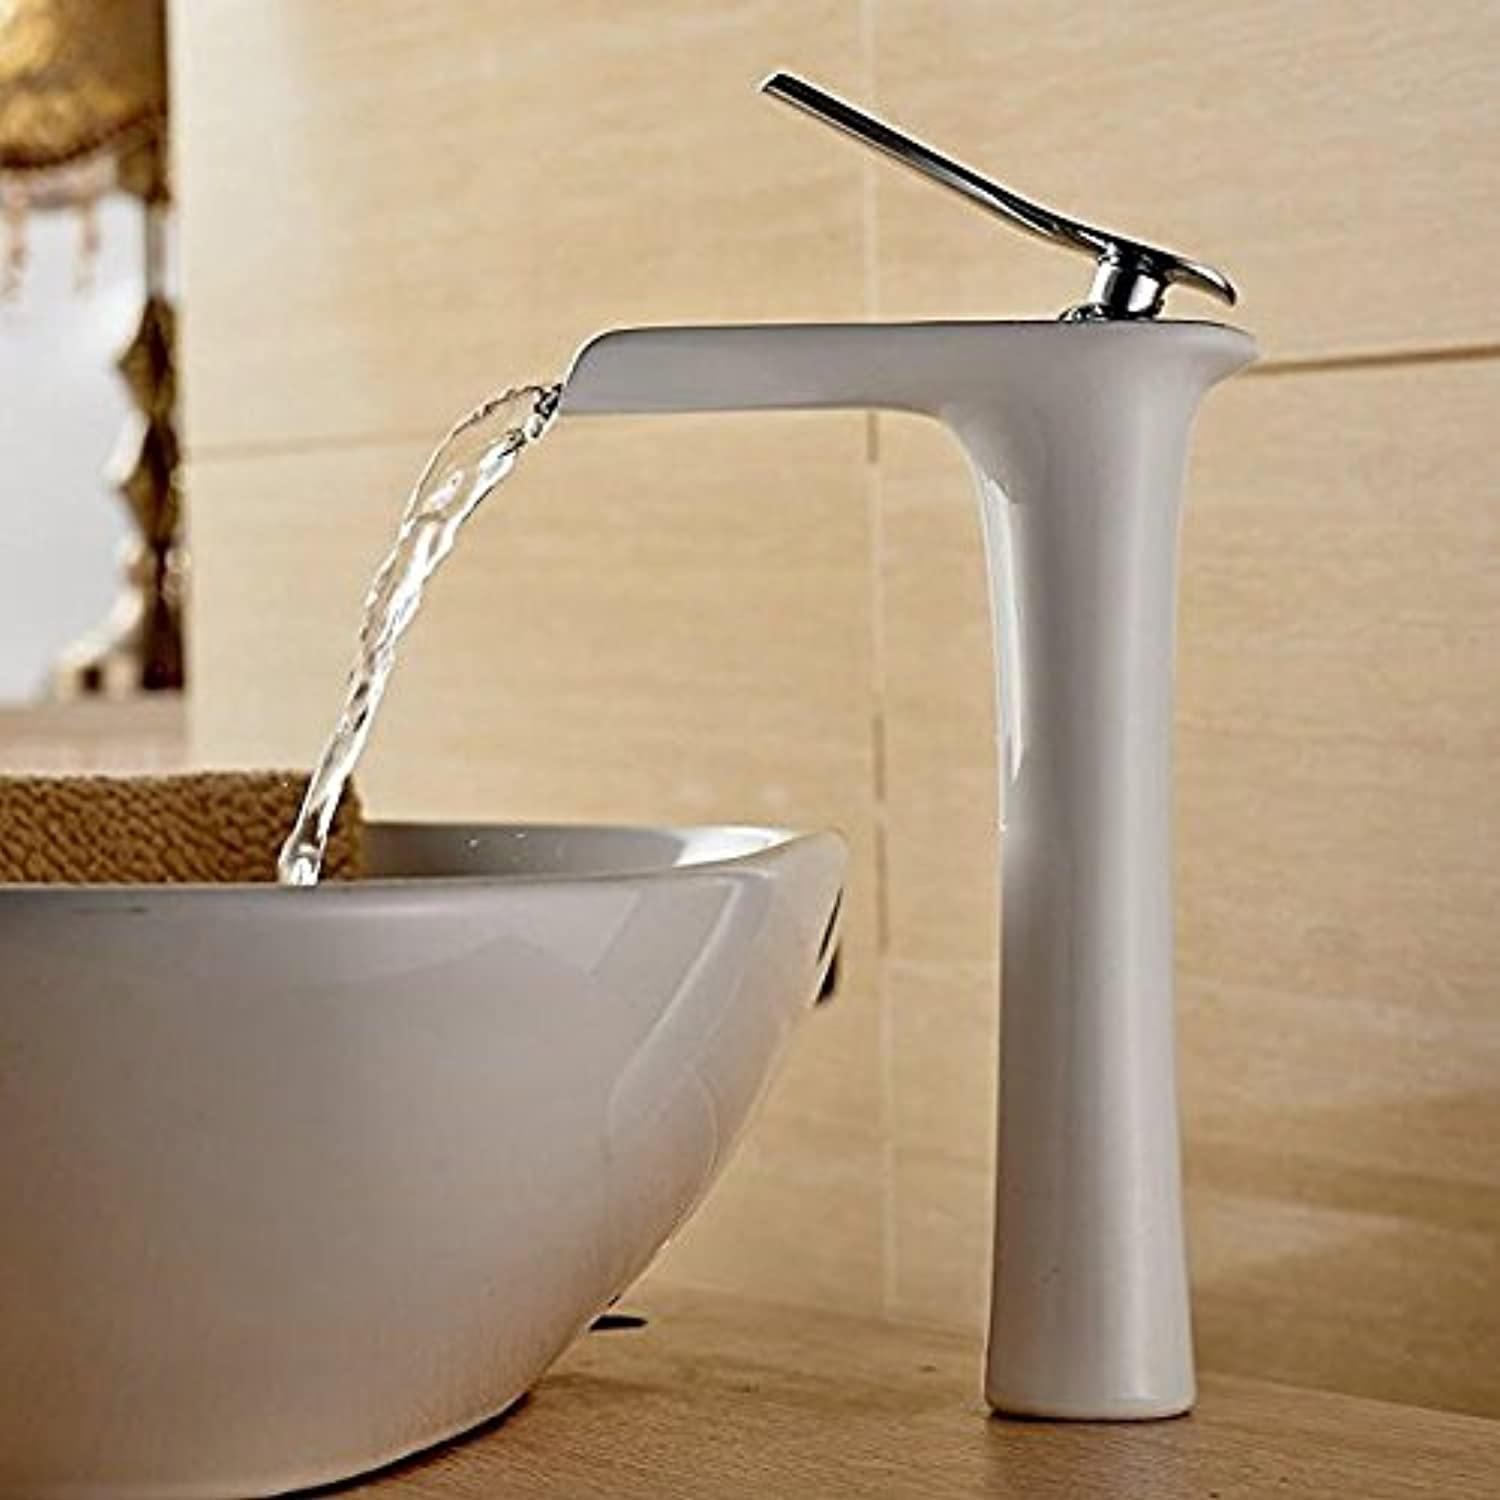 Makej Modern Basin Mixer Tap Single Handle Waterfall Spout Tall Bathroom Sink Tap Polished Chrome Finish White Painting